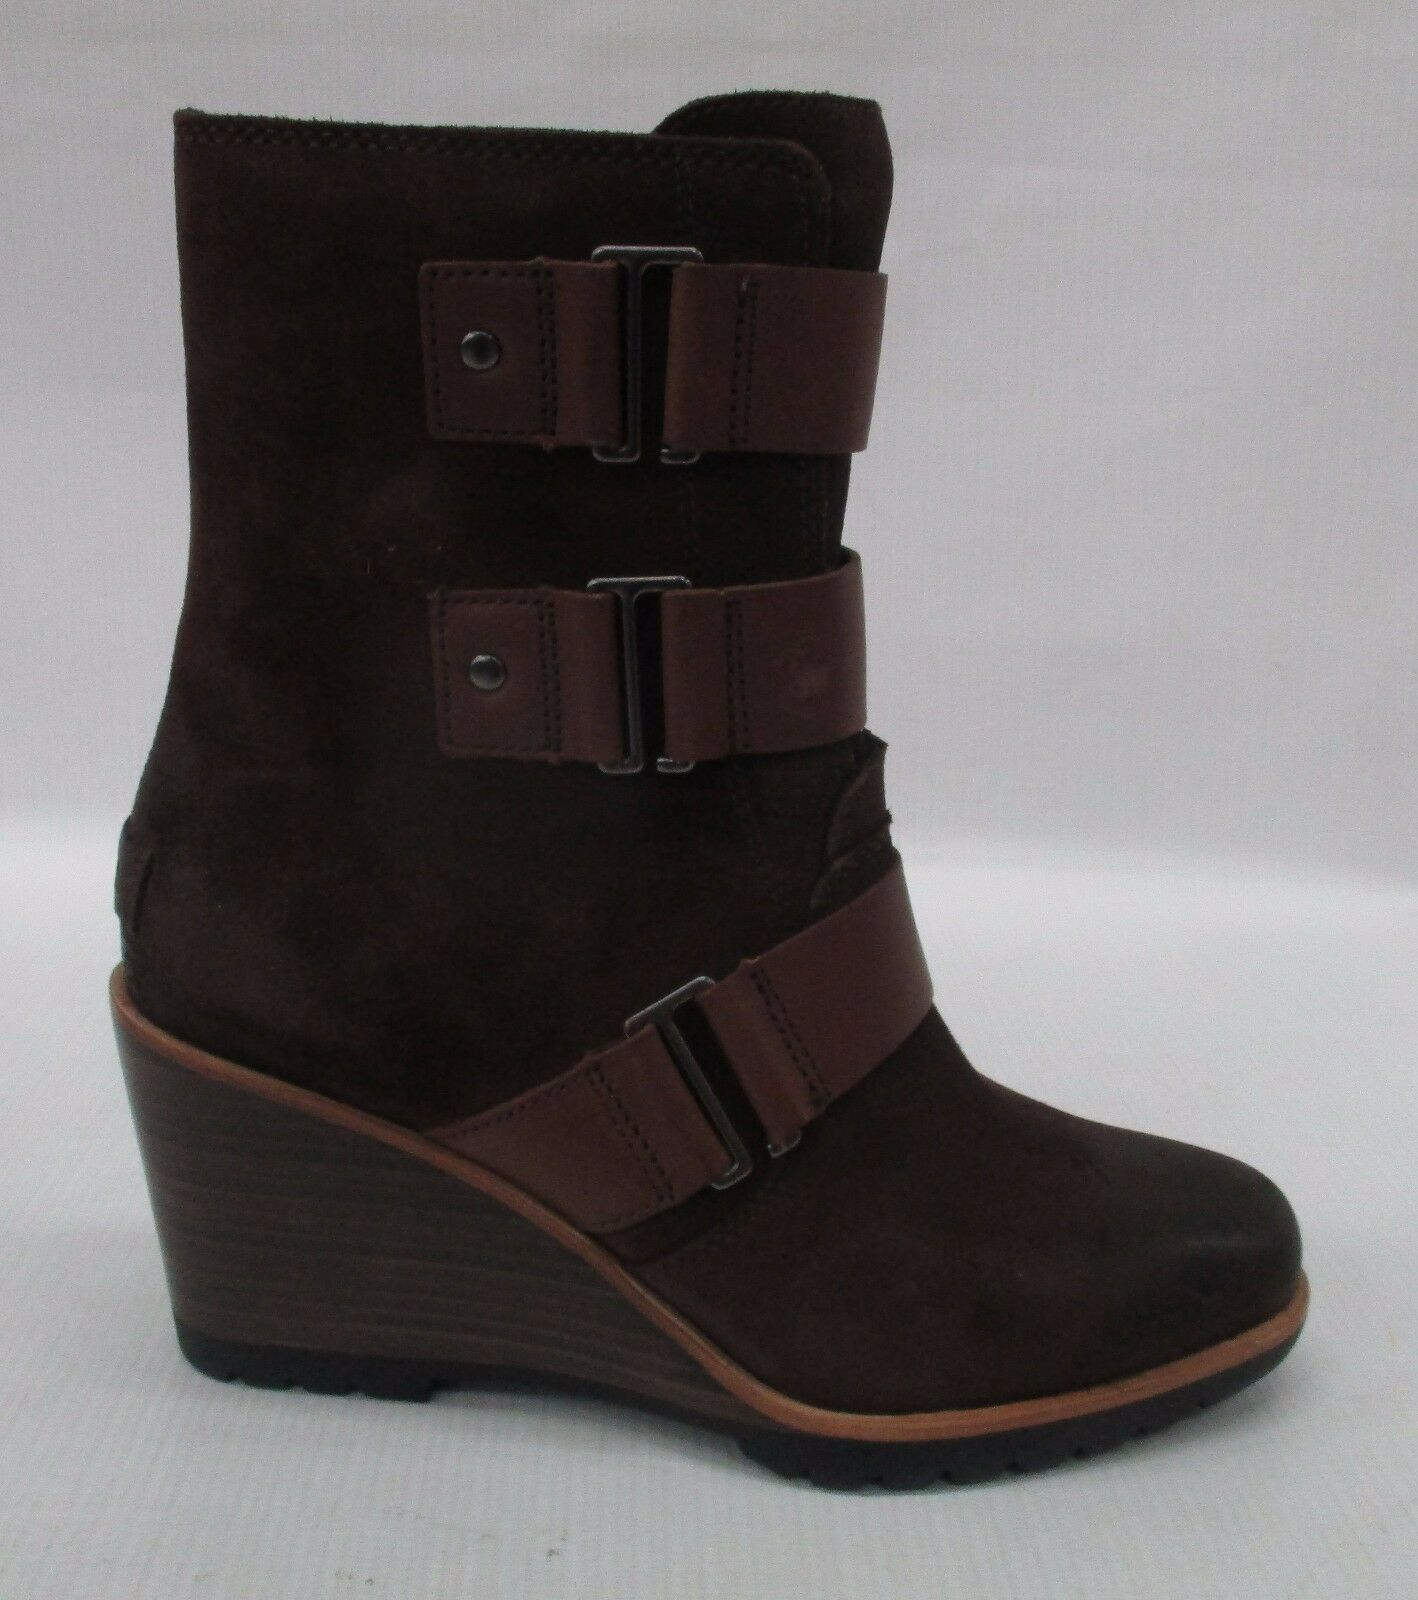 Sorel Donna After Hours Suede Bootie Stivali 1757751 Tobacco Size 8.5